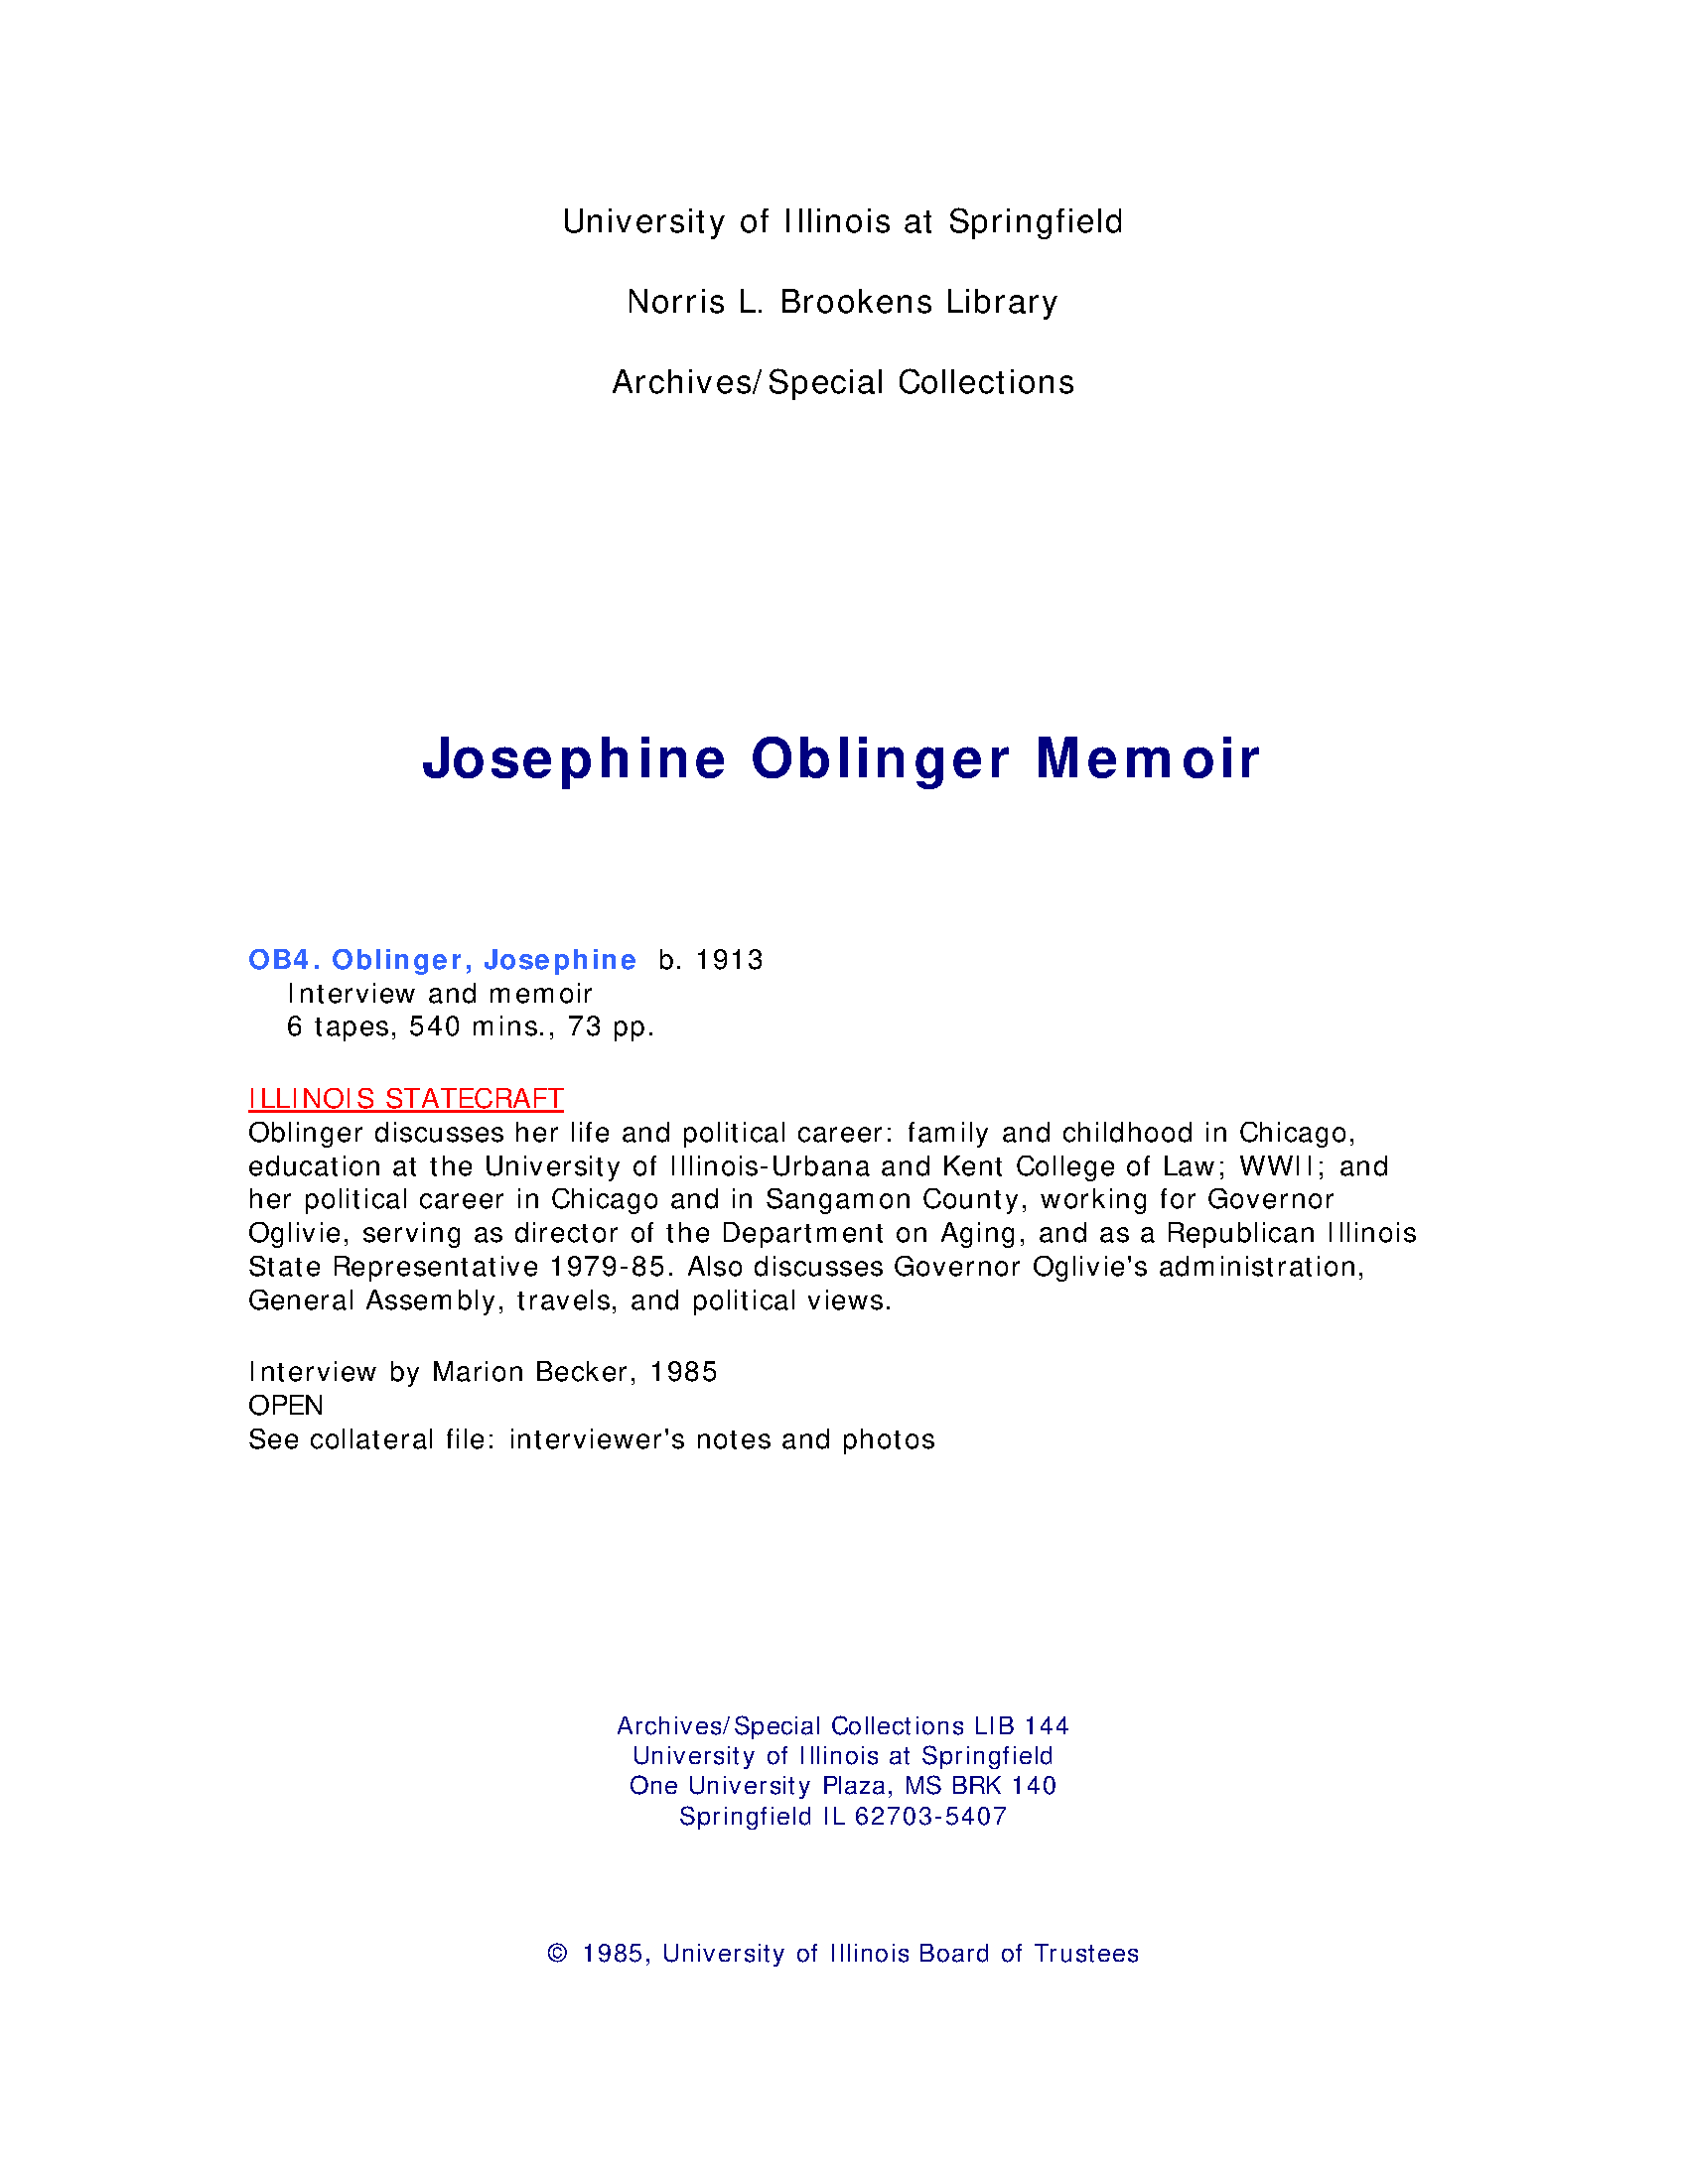 Josephine Oblinger Memoir Part 1 The Oral History Collection Of The University Of Illinois At Springfield Illinois Digital Archives